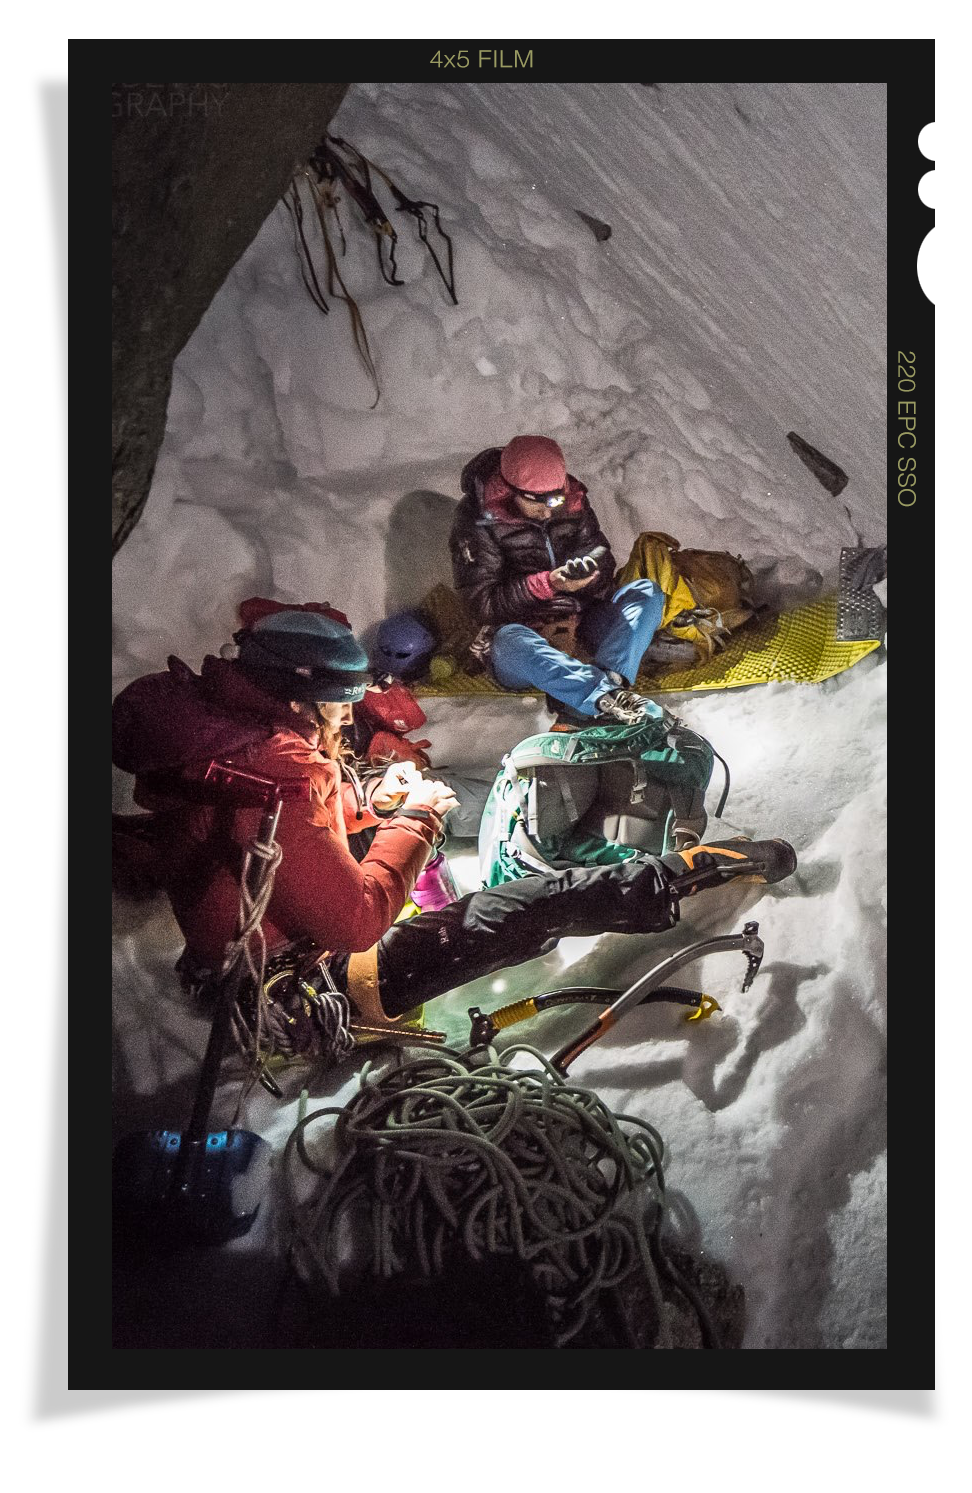 Gordon at camp during Everest climb.